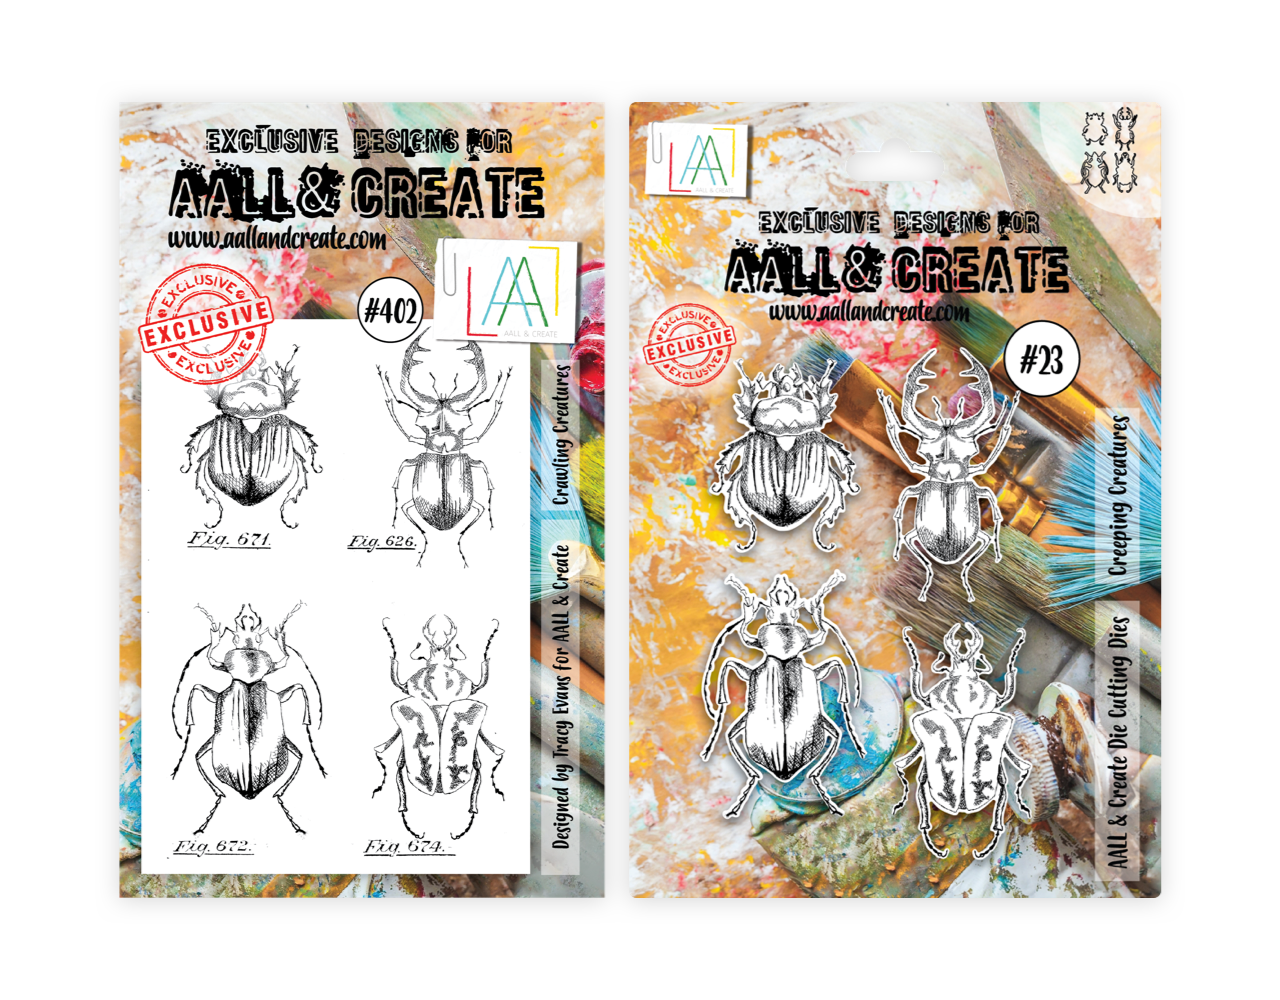 Aall&create - DIES #23 AND STAMP #402